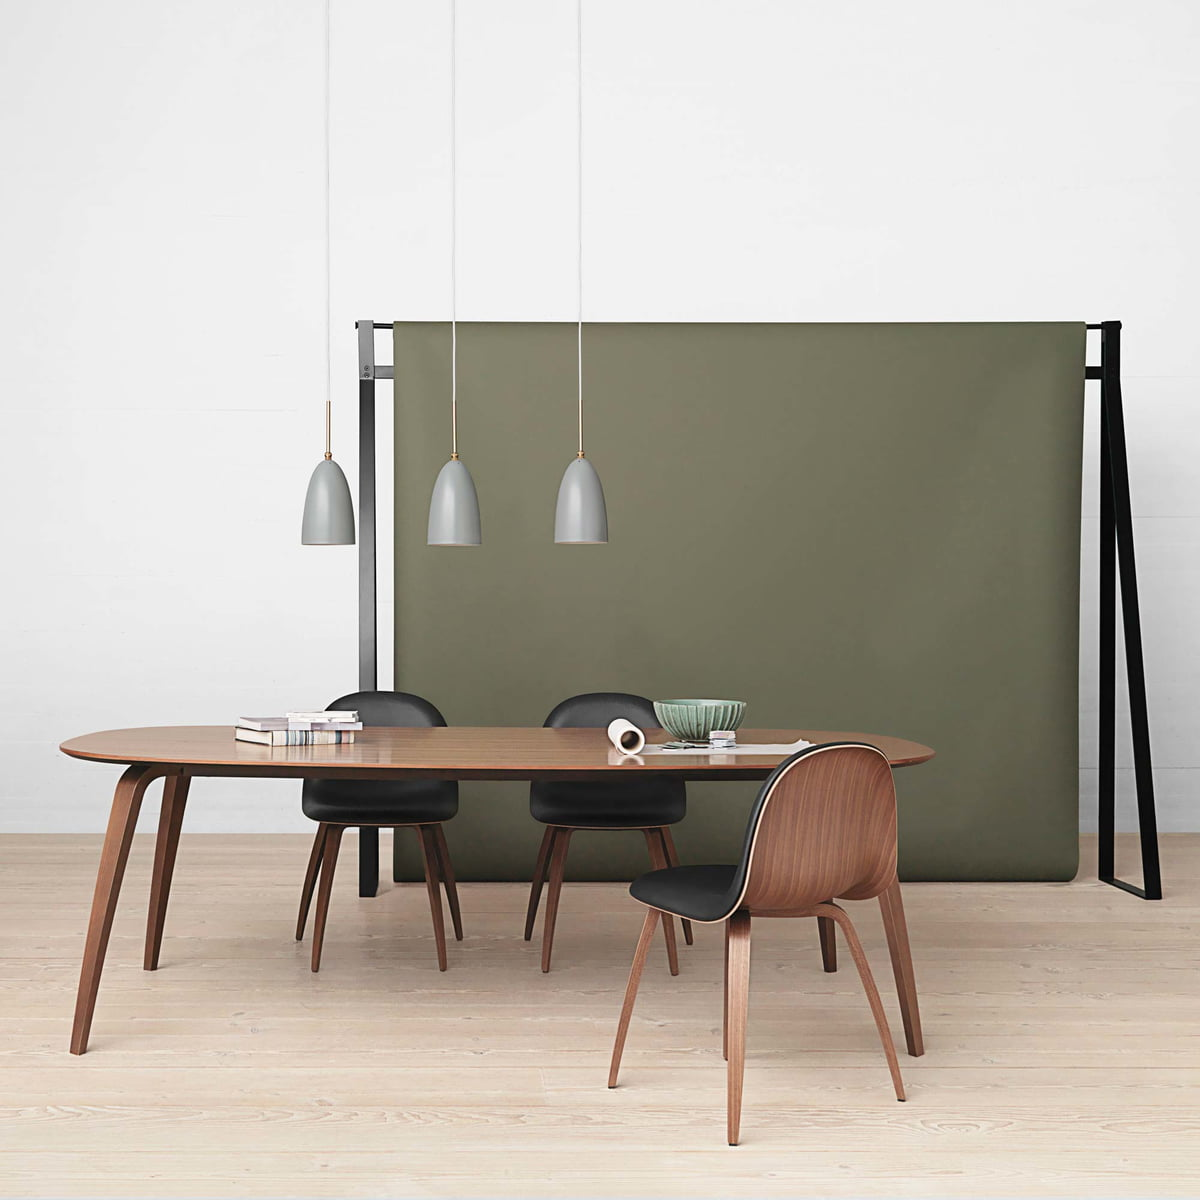 Dining Table Rollins Dining Table: Elliptical Dining Table By Gubi